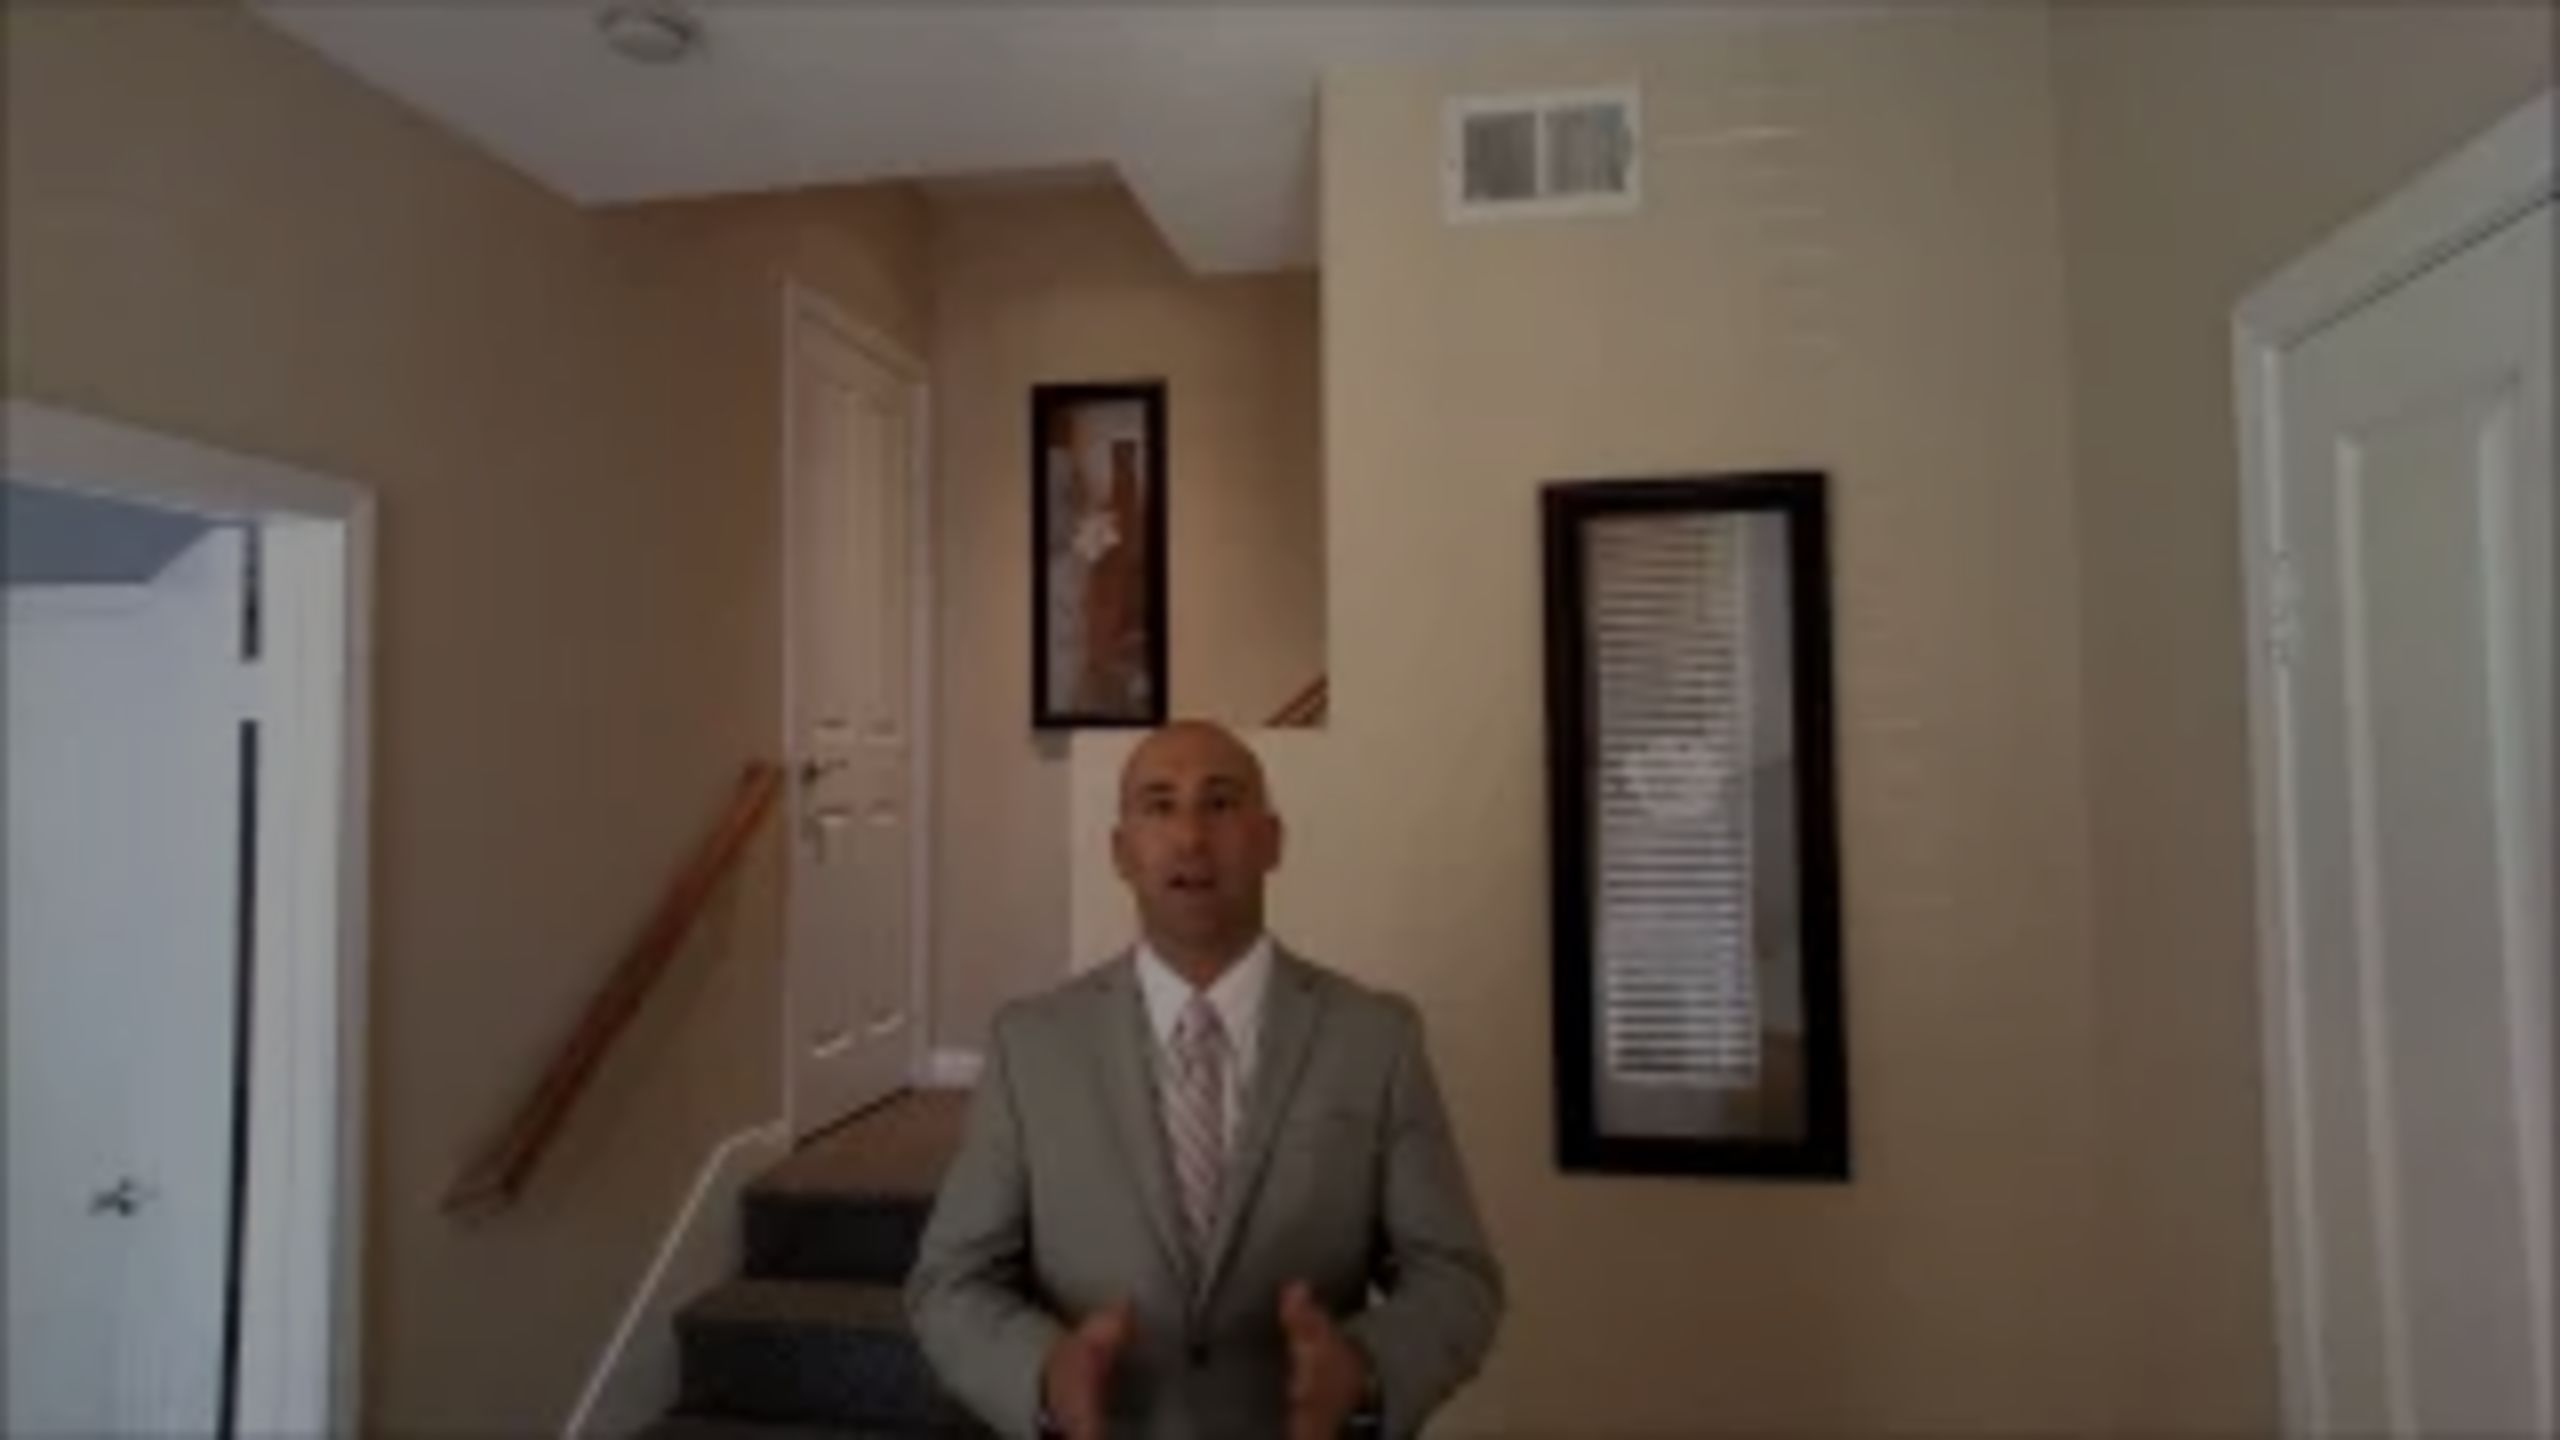 La Mesa Homes for Sale / Don't Be Afraid of Home Inspections